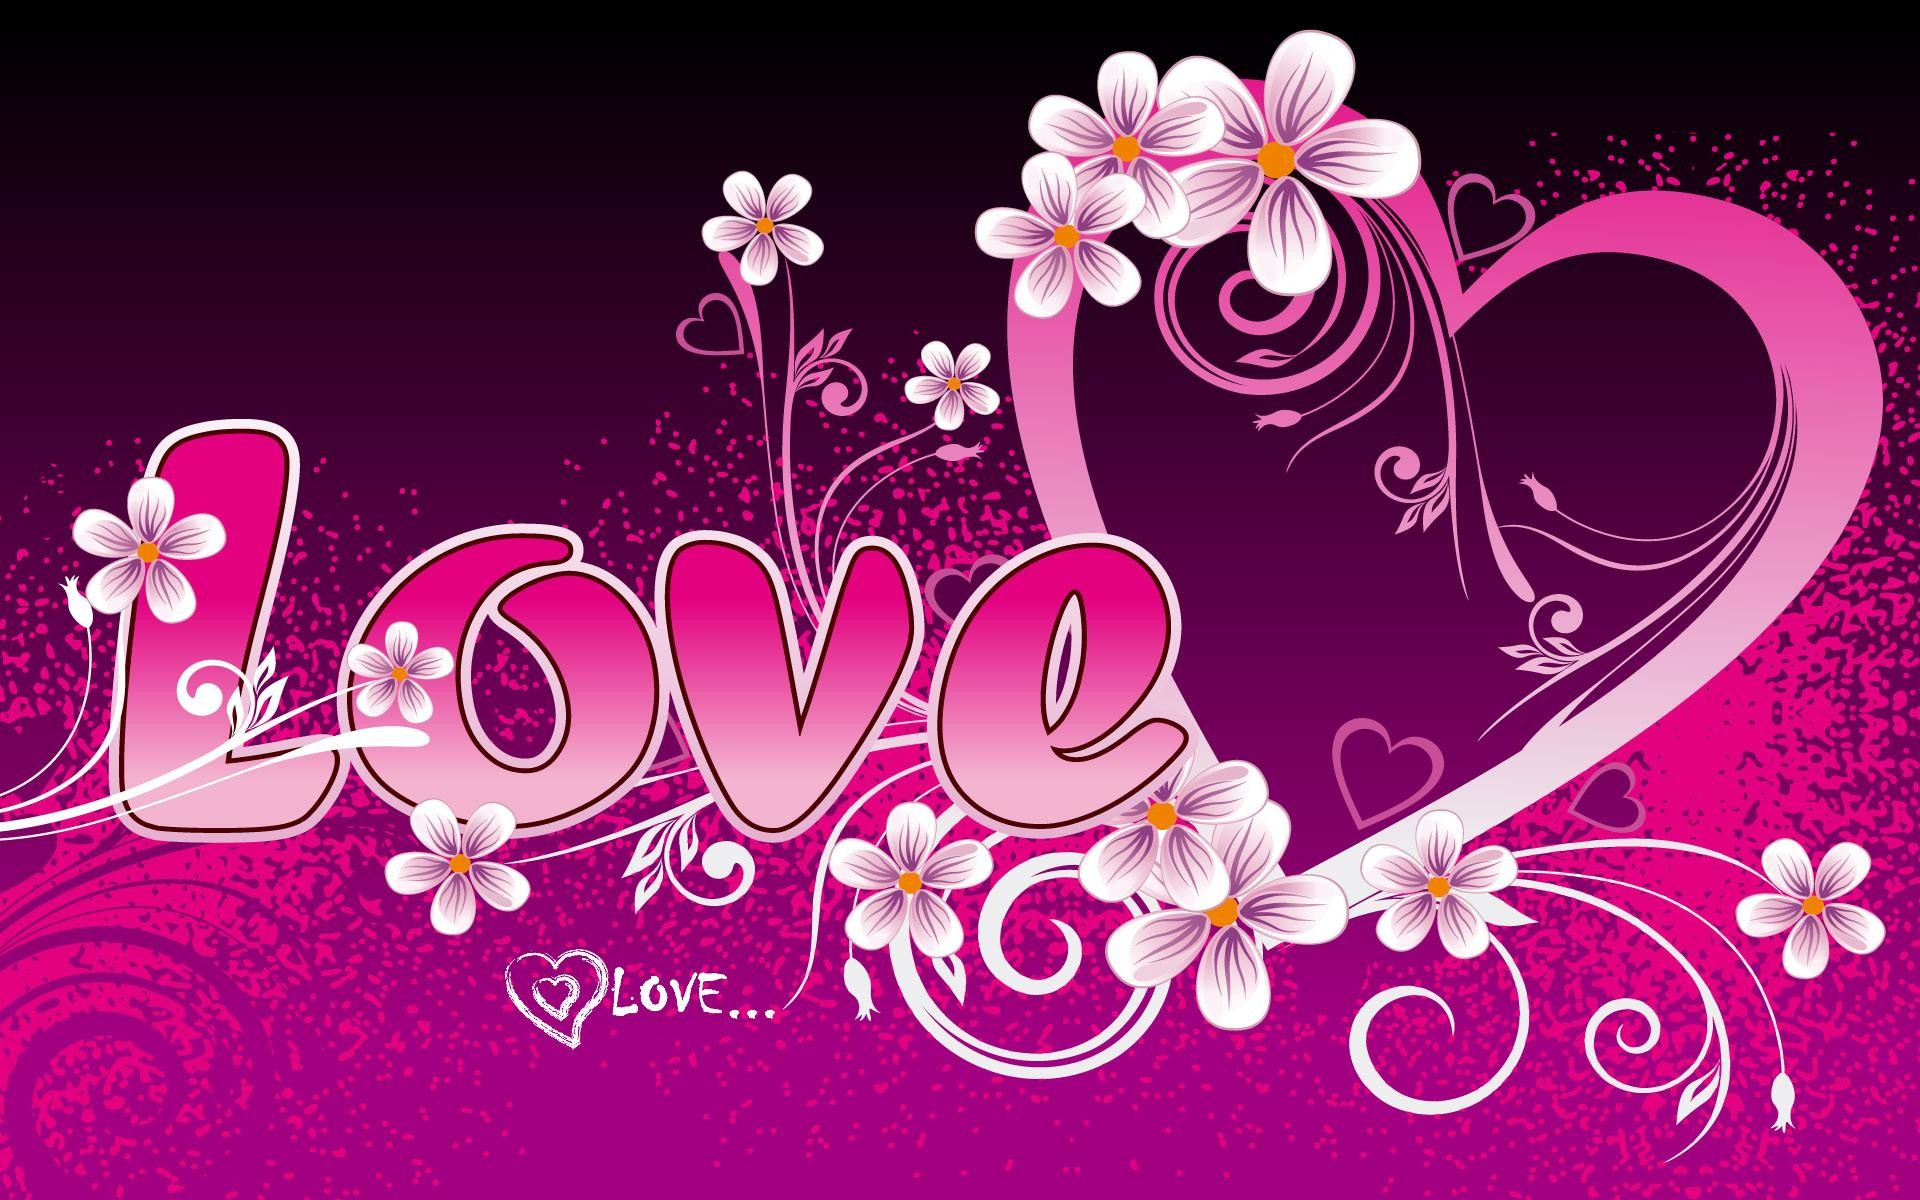 1920x1200 Images Of Love Hearts Wallpapers (42 Wallpapers)